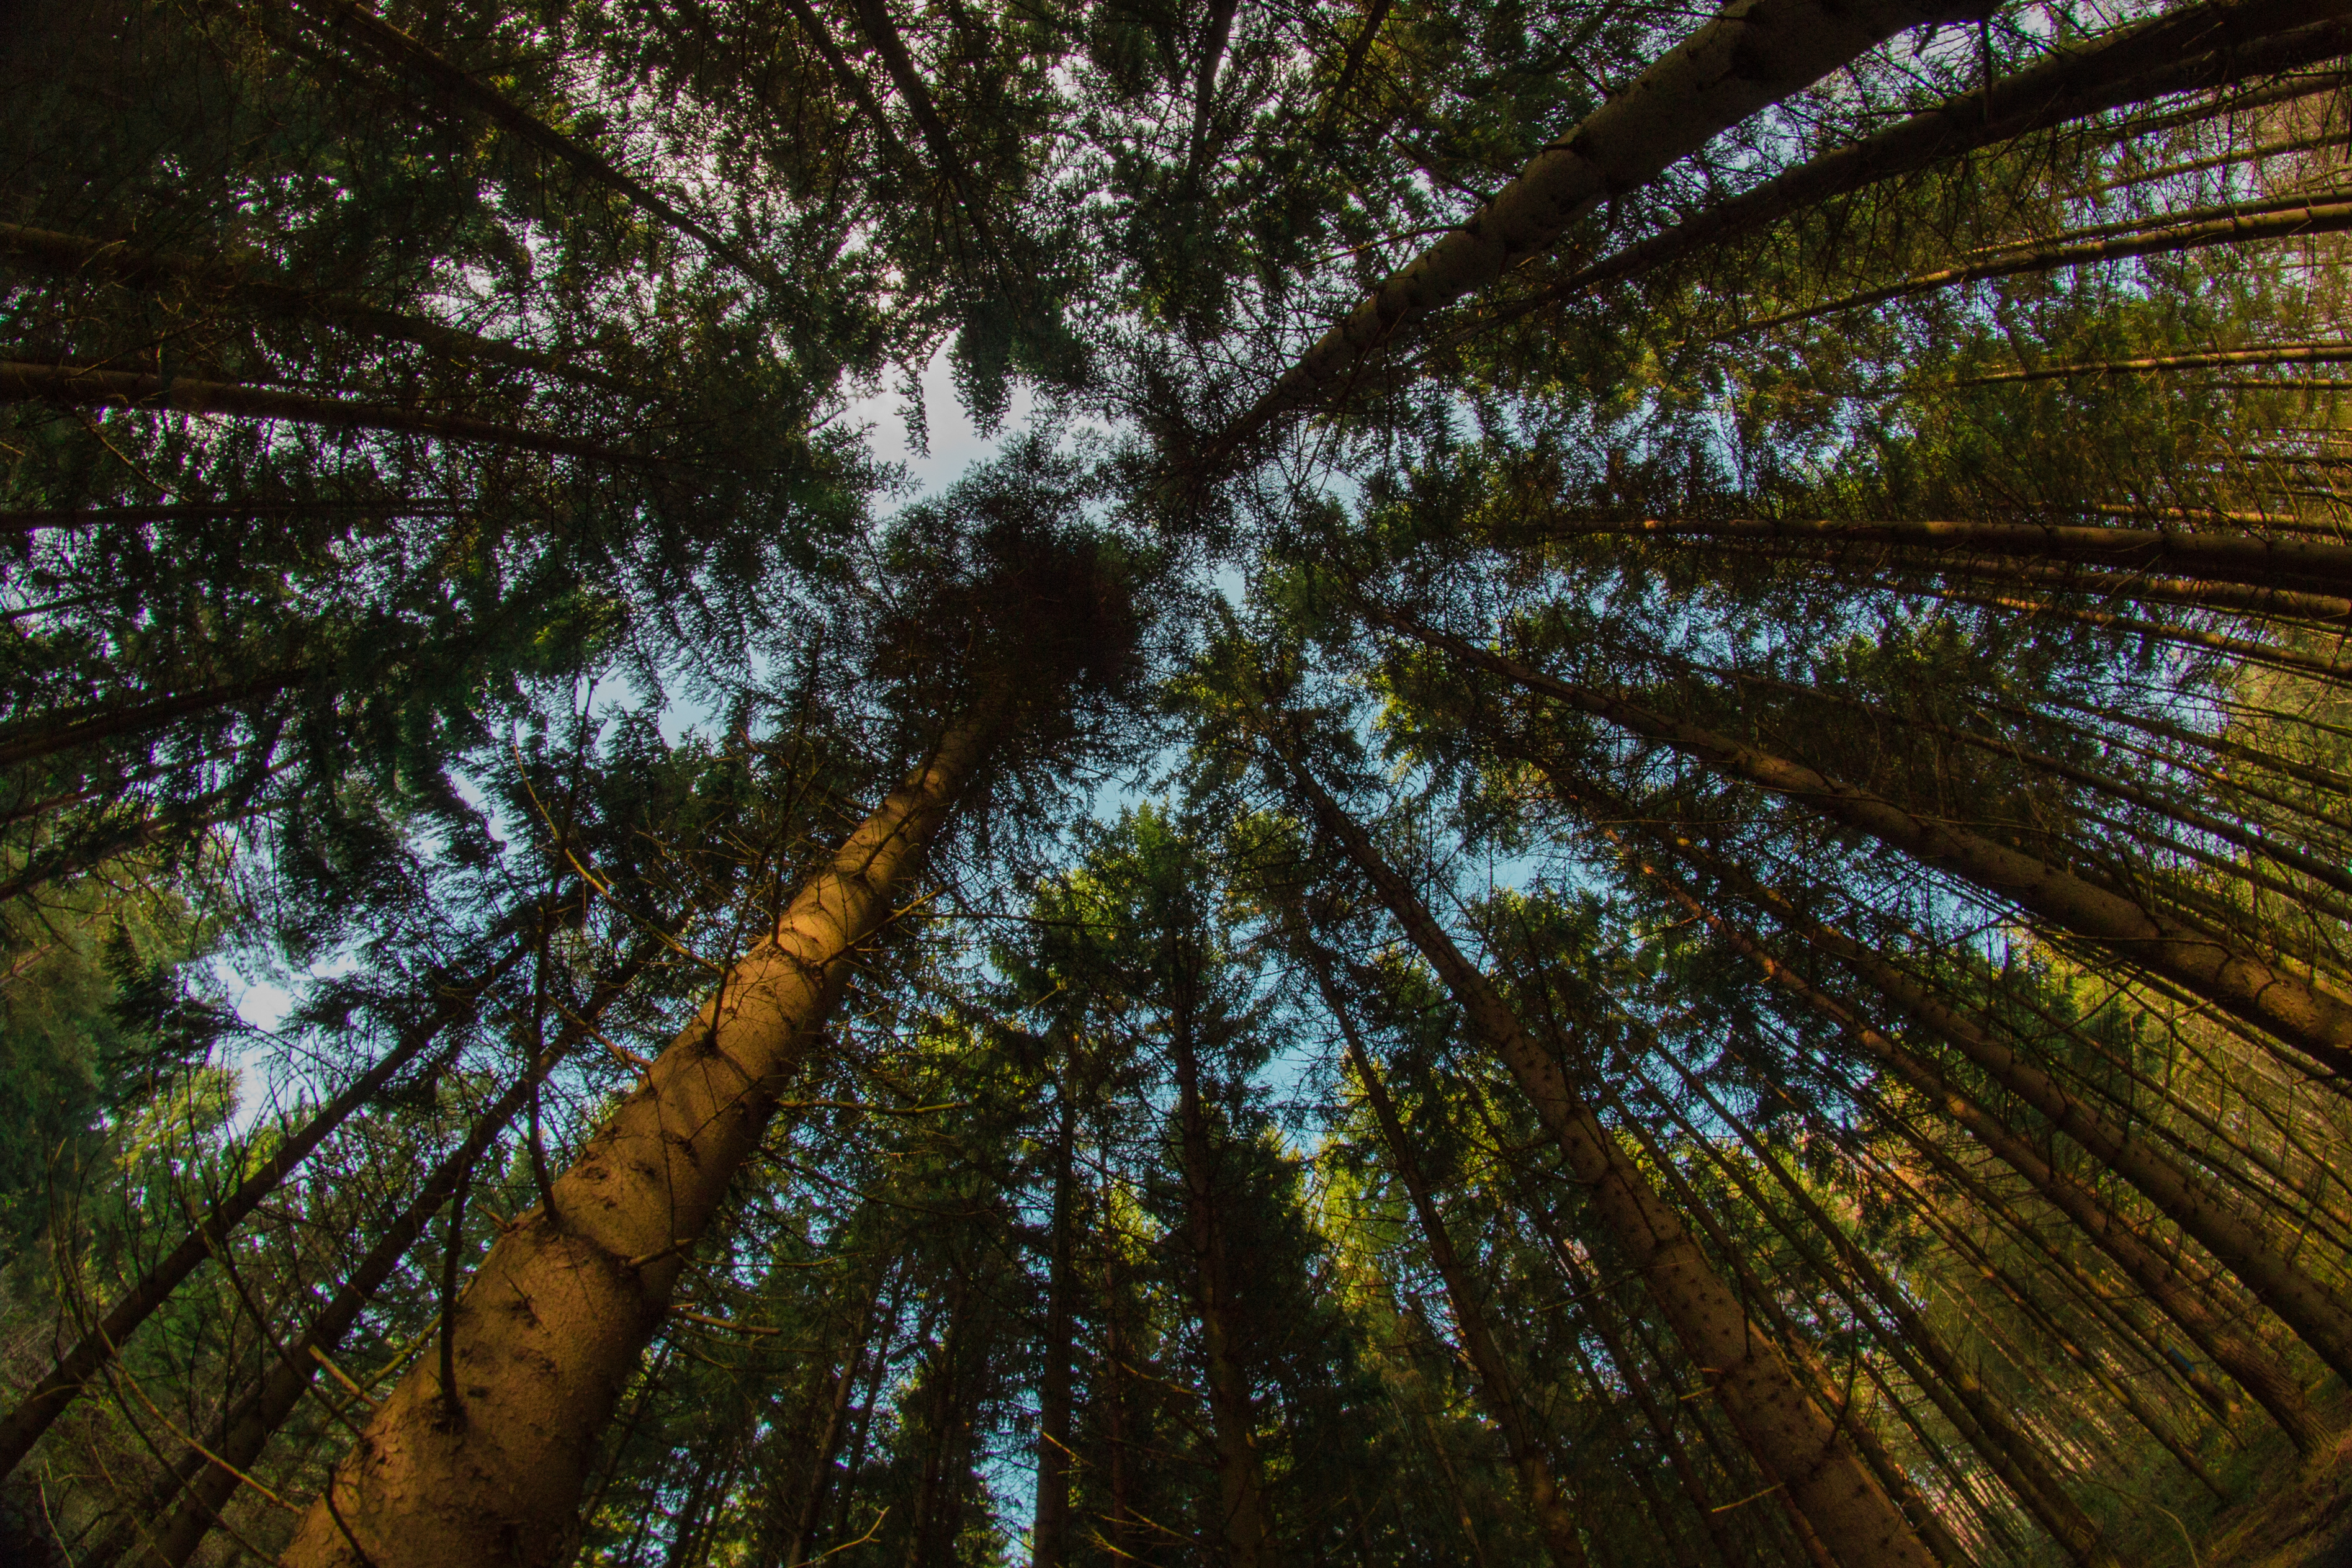 120468 download wallpaper Nature, Trees, Bottom View, Tops, Top, Branches screensavers and pictures for free